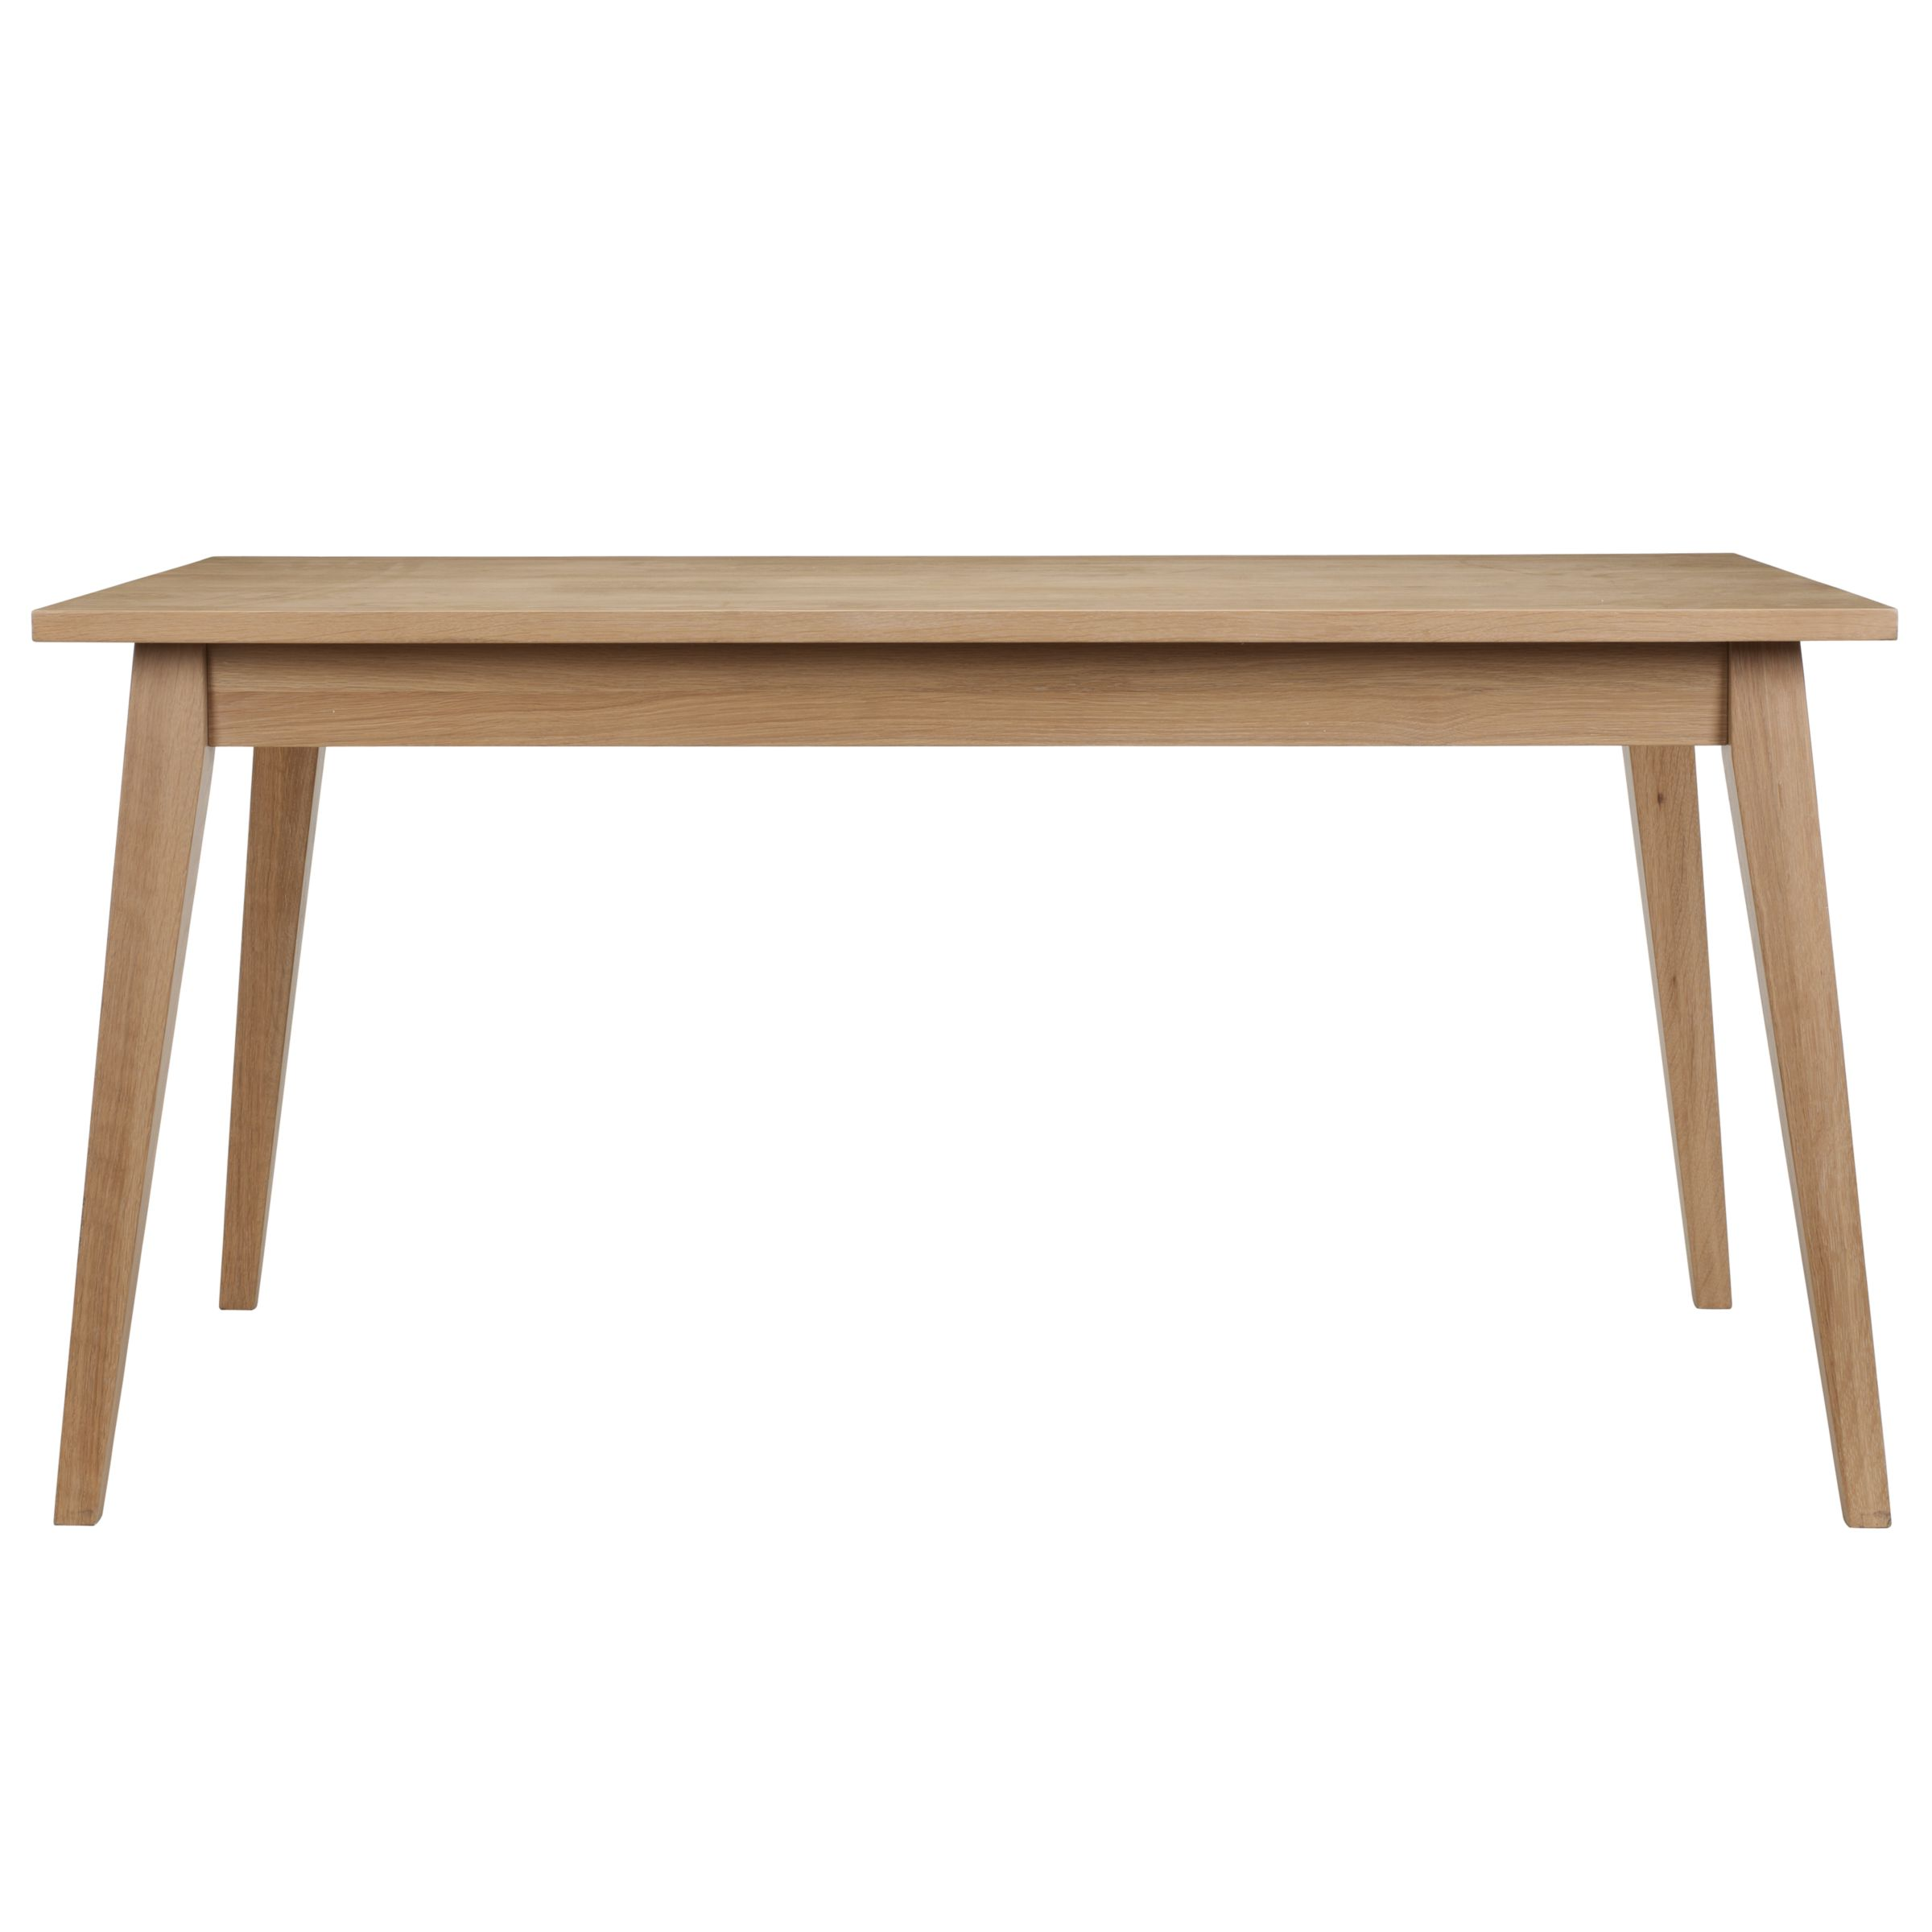 john lewis oak dining tables : 231213500 from www.comparestoreprices.co.uk size 1600 x 1600 jpeg 97kB